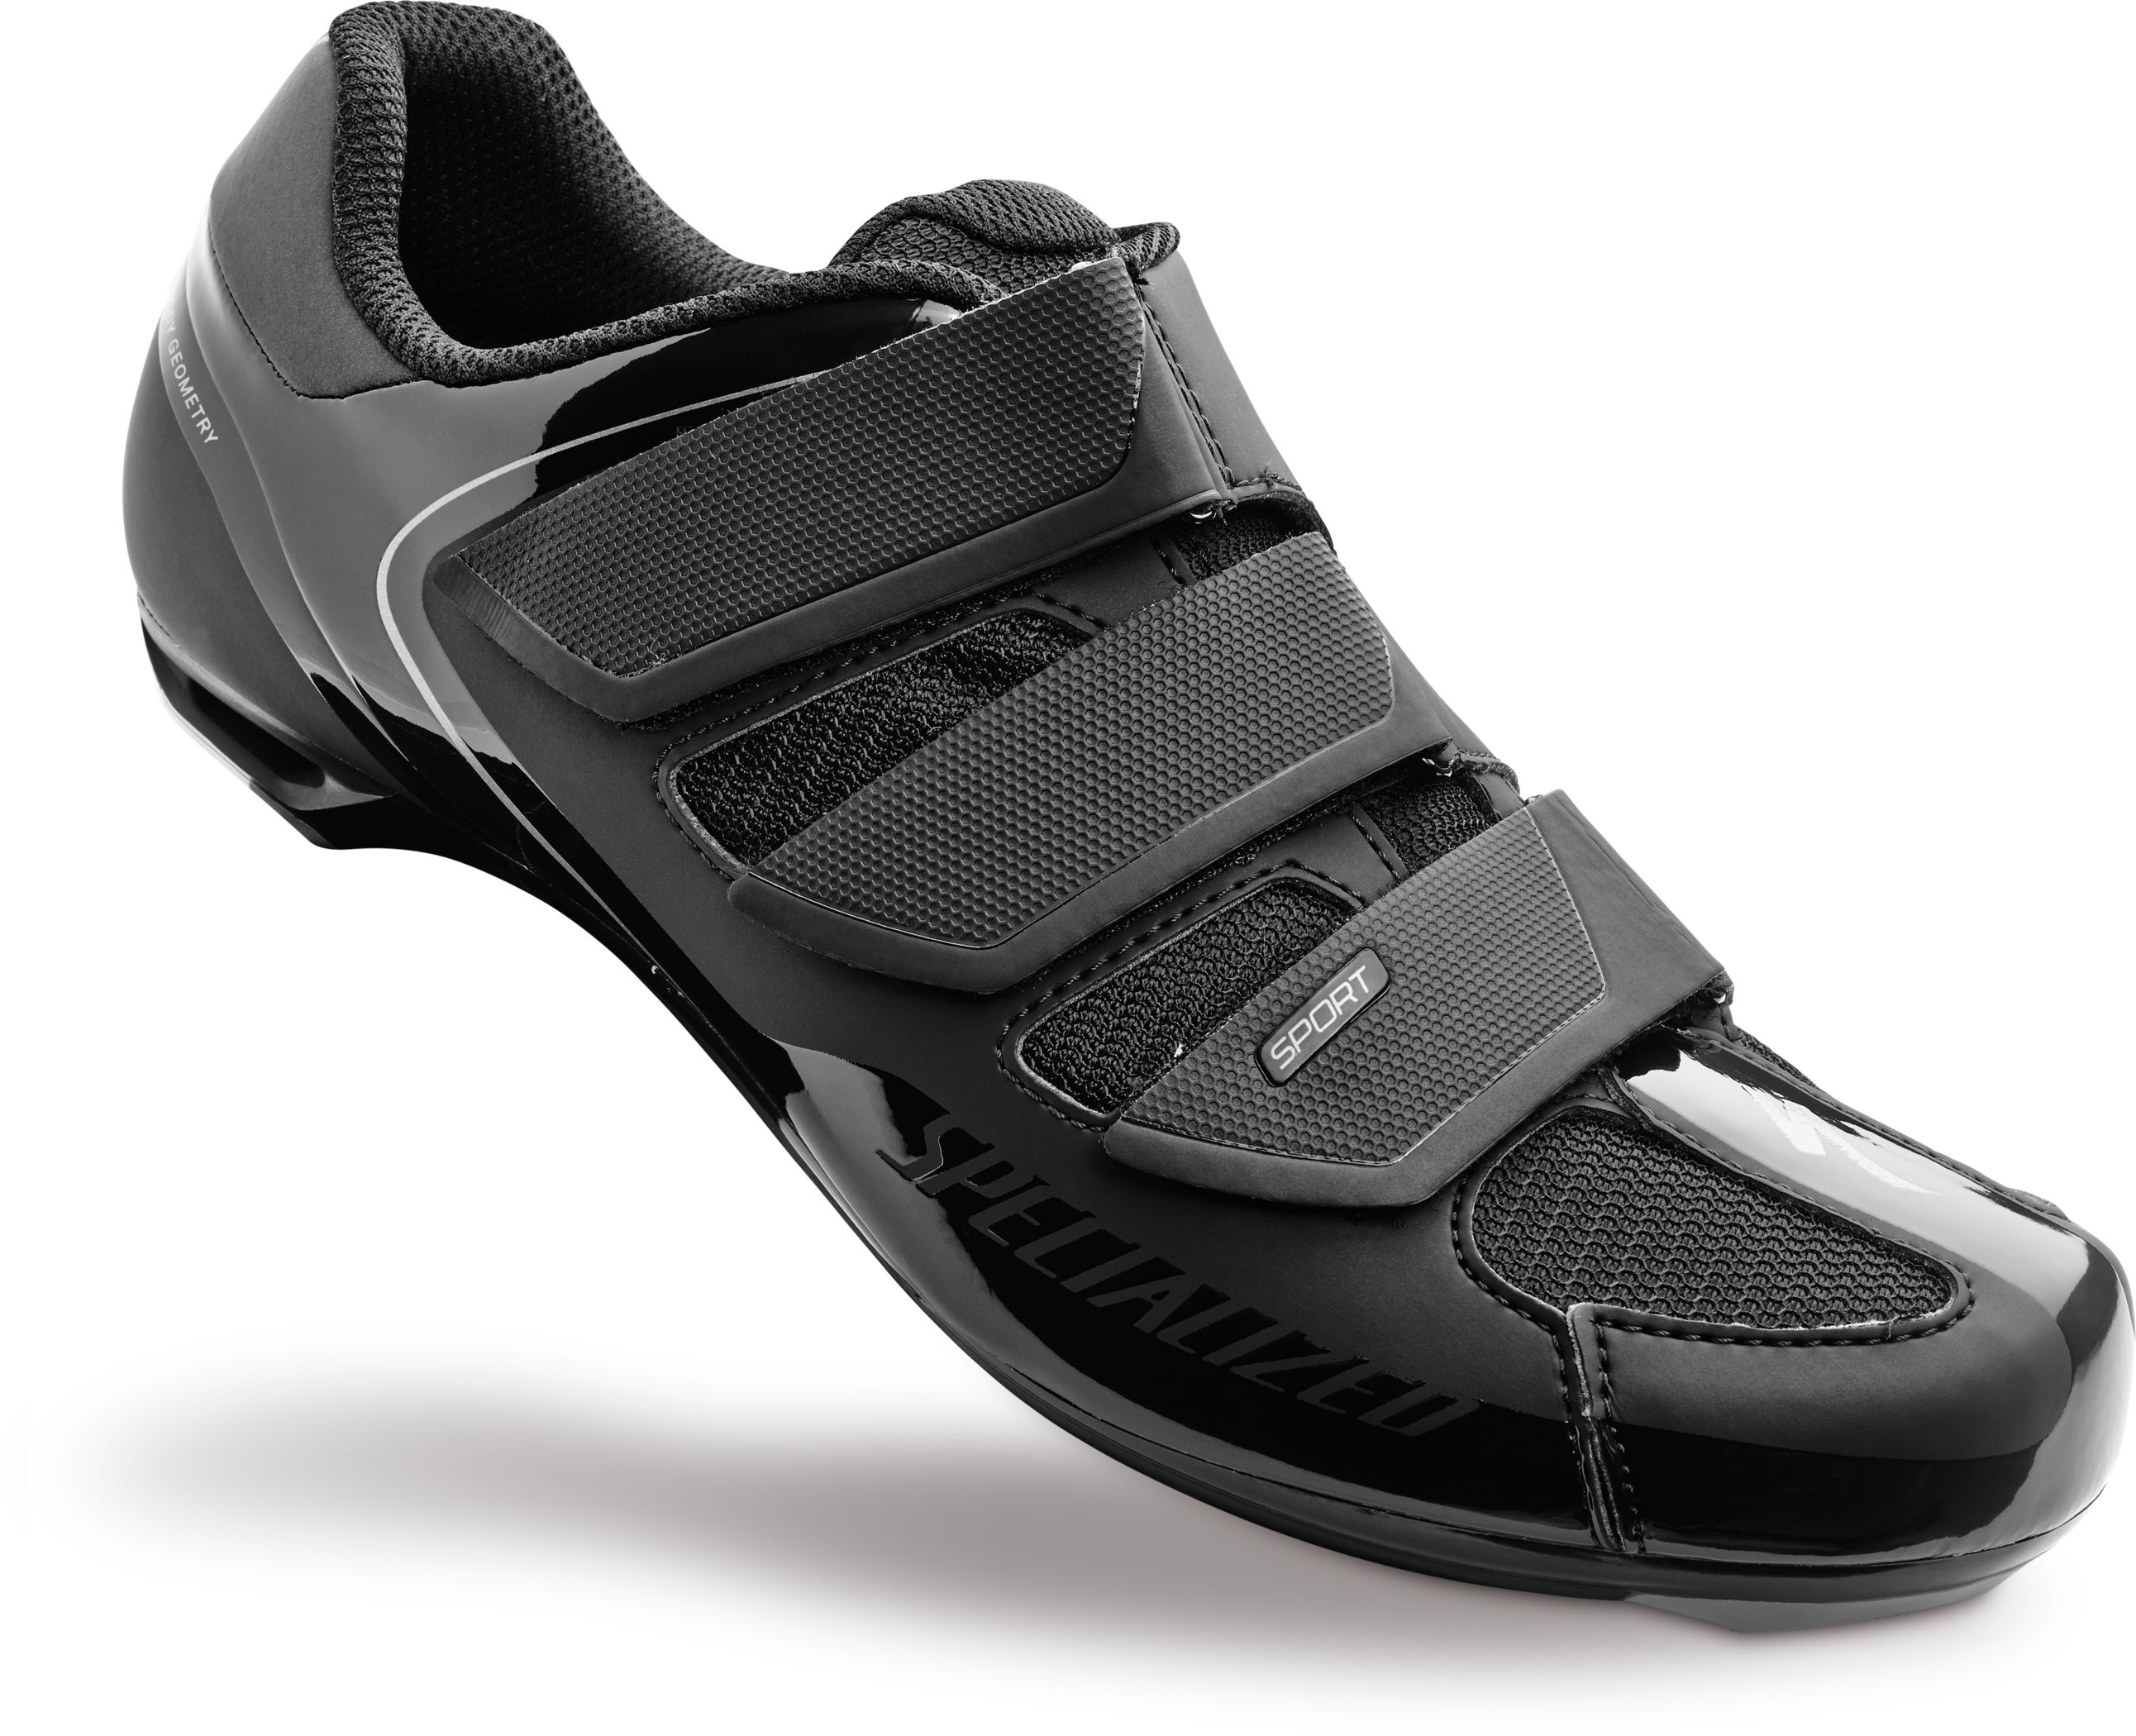 SPECIALIZED SPORT RD SHOE BLK 47/14 - Bikedreams & Dustbikes